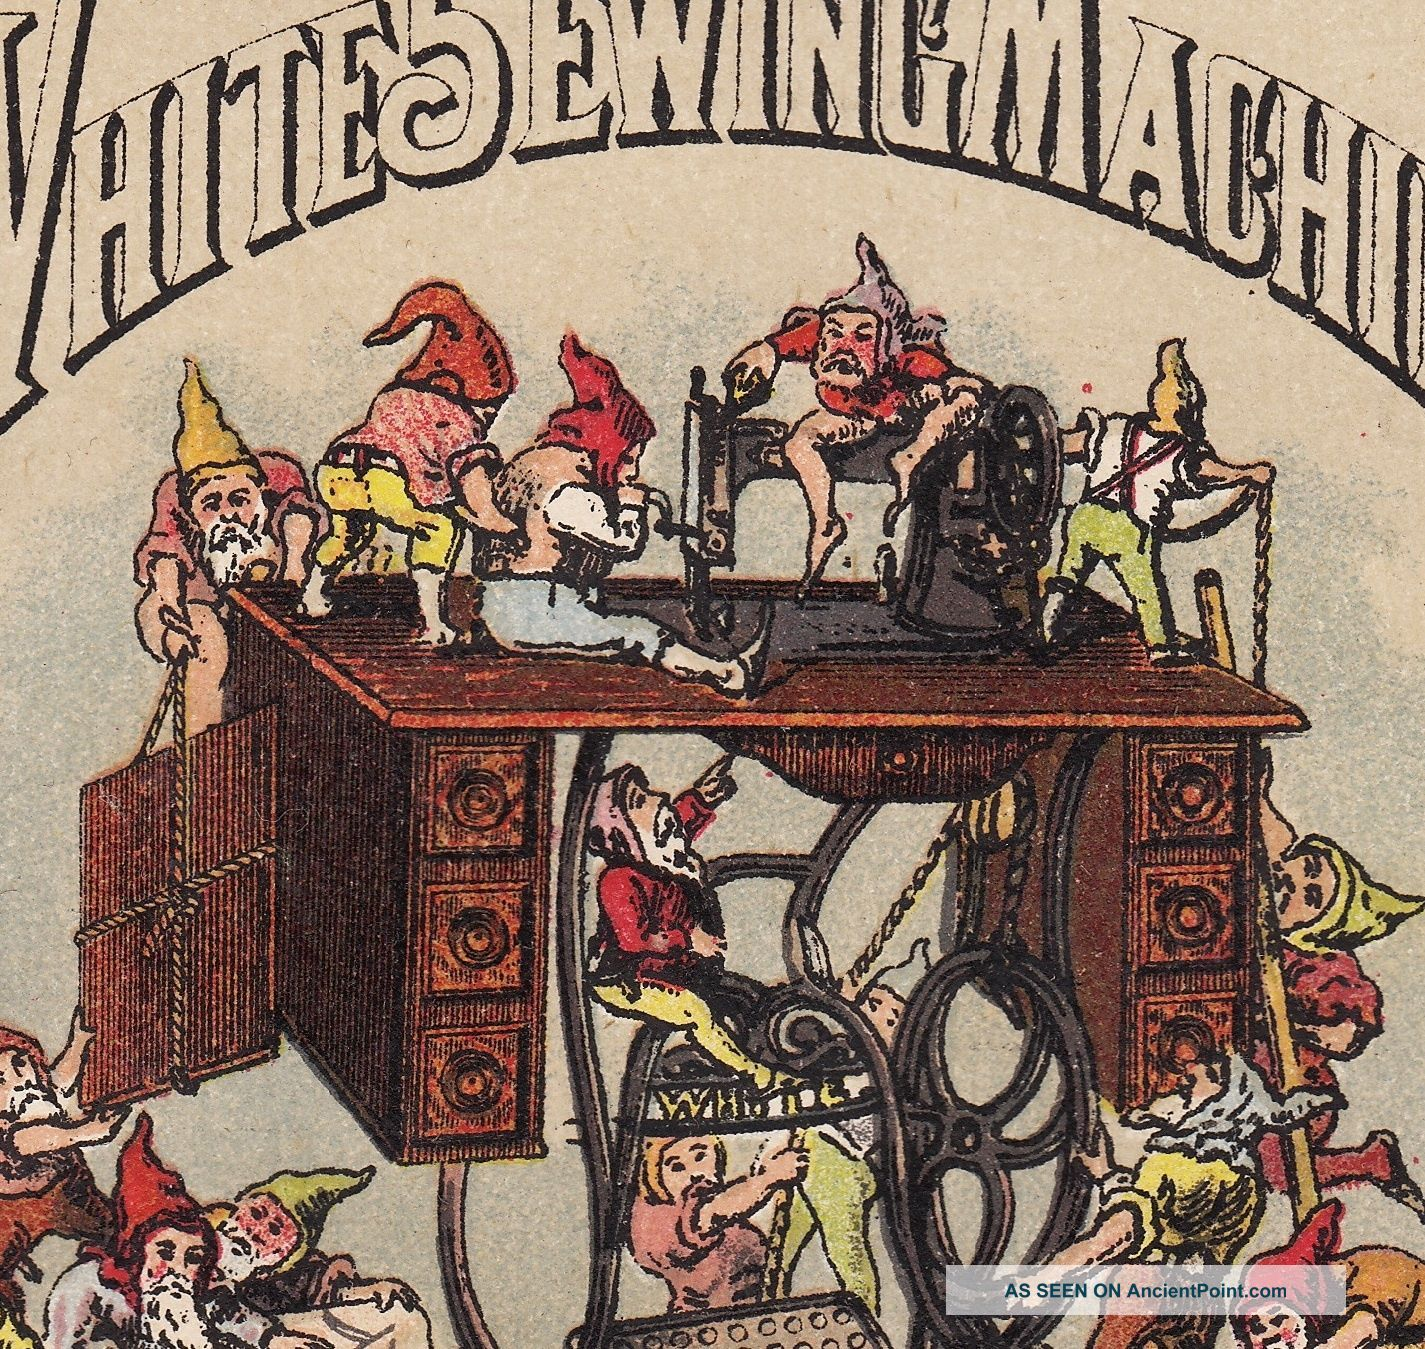 Elves 1800 ' S White Sewing Machine Cleveland Waterbury Vt Gnome Advertising Card Sewing Machines photo